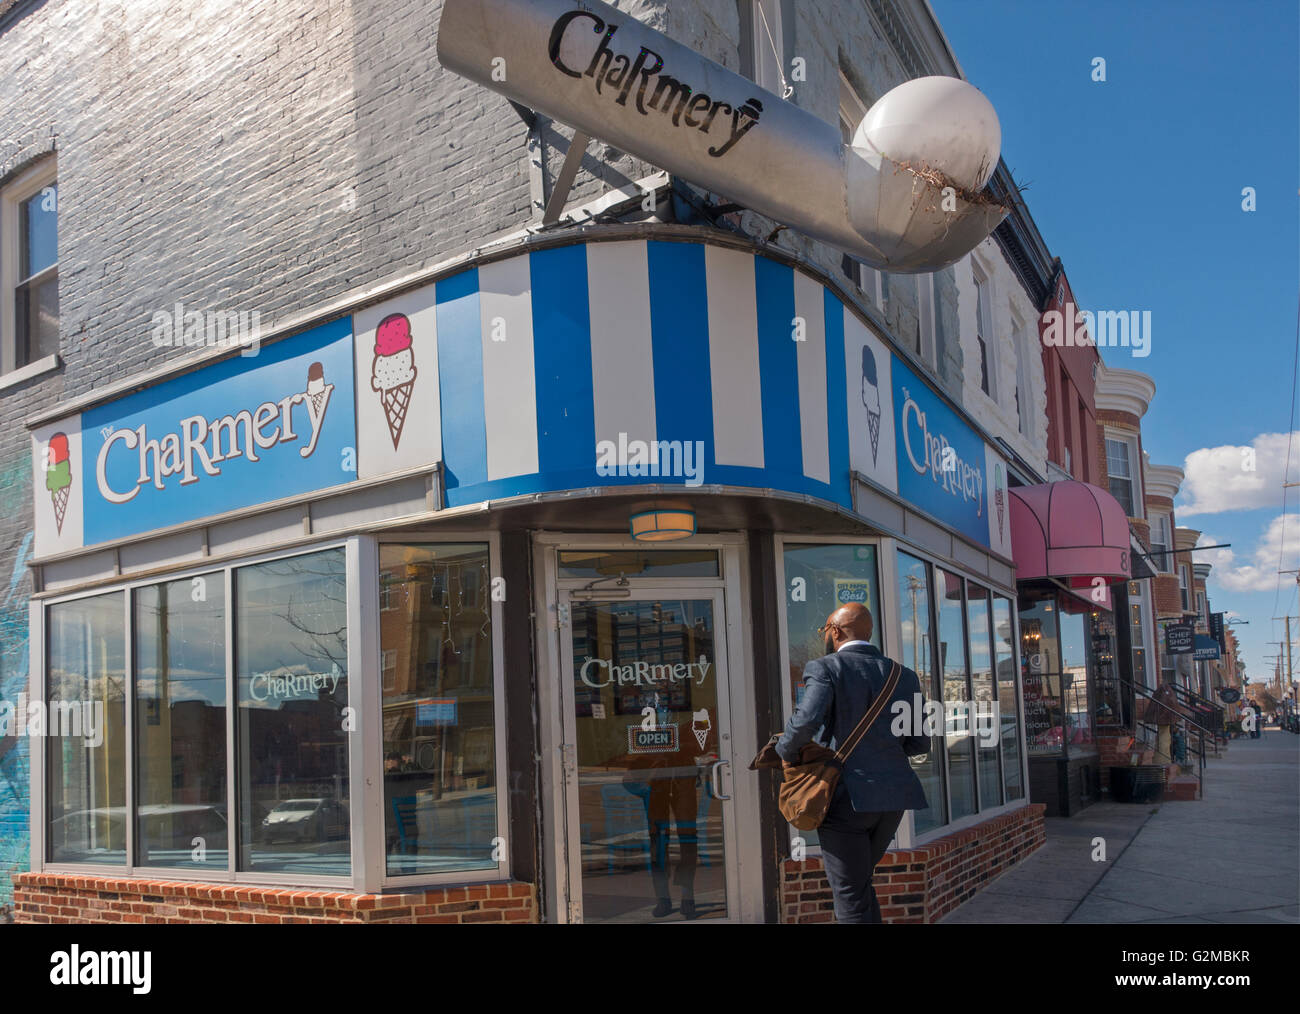 Charmery ice cream shop in Baltimore Maryland - Stock Image